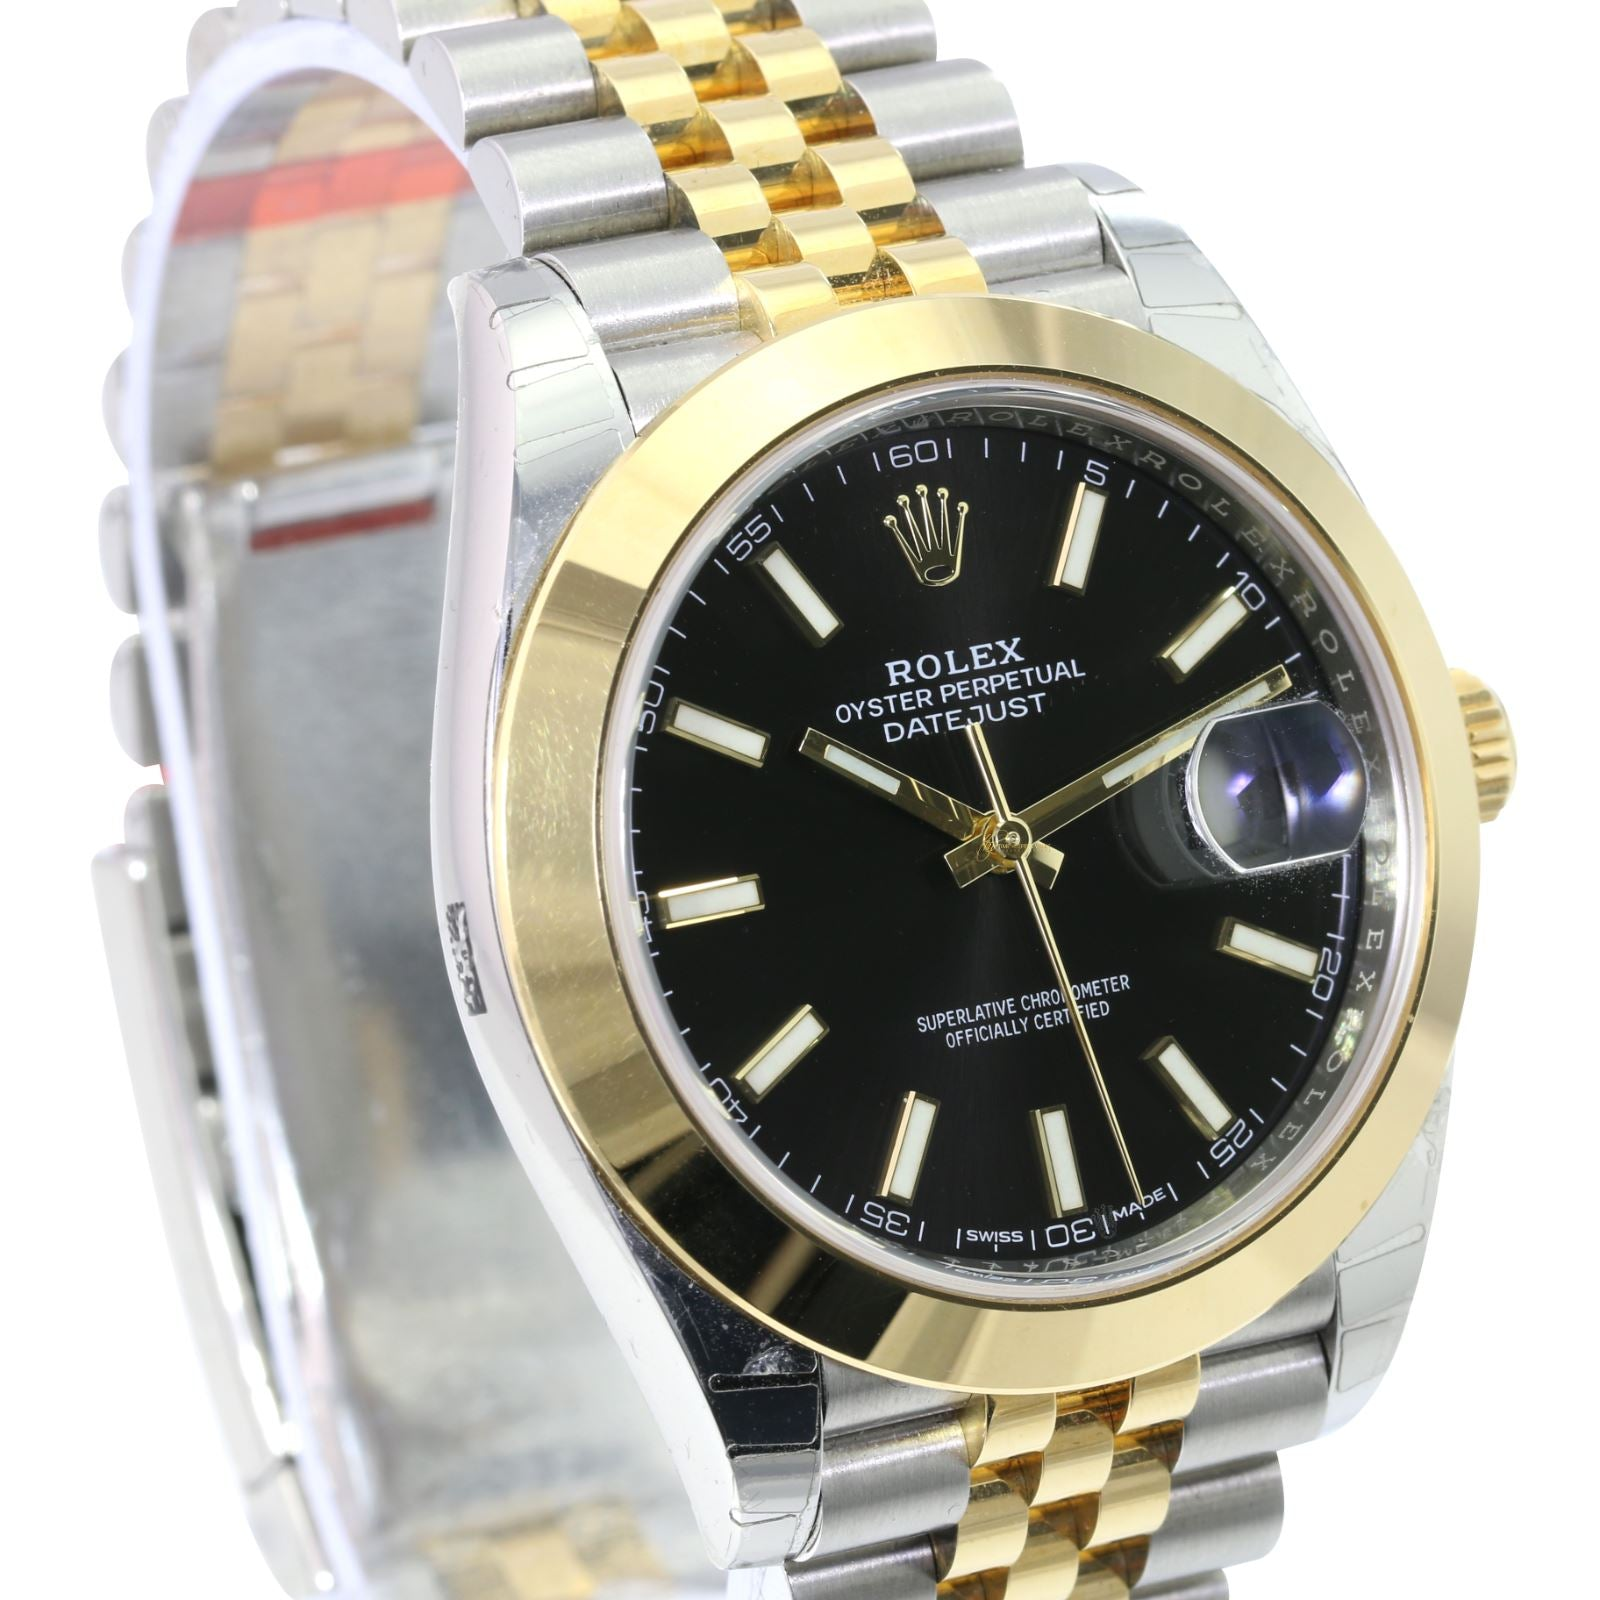 Unworn Rolex Factory Datejust 41mm 126303 Black Index Dial Smooth Bezel Jubilee Band - Time Keepers Vault